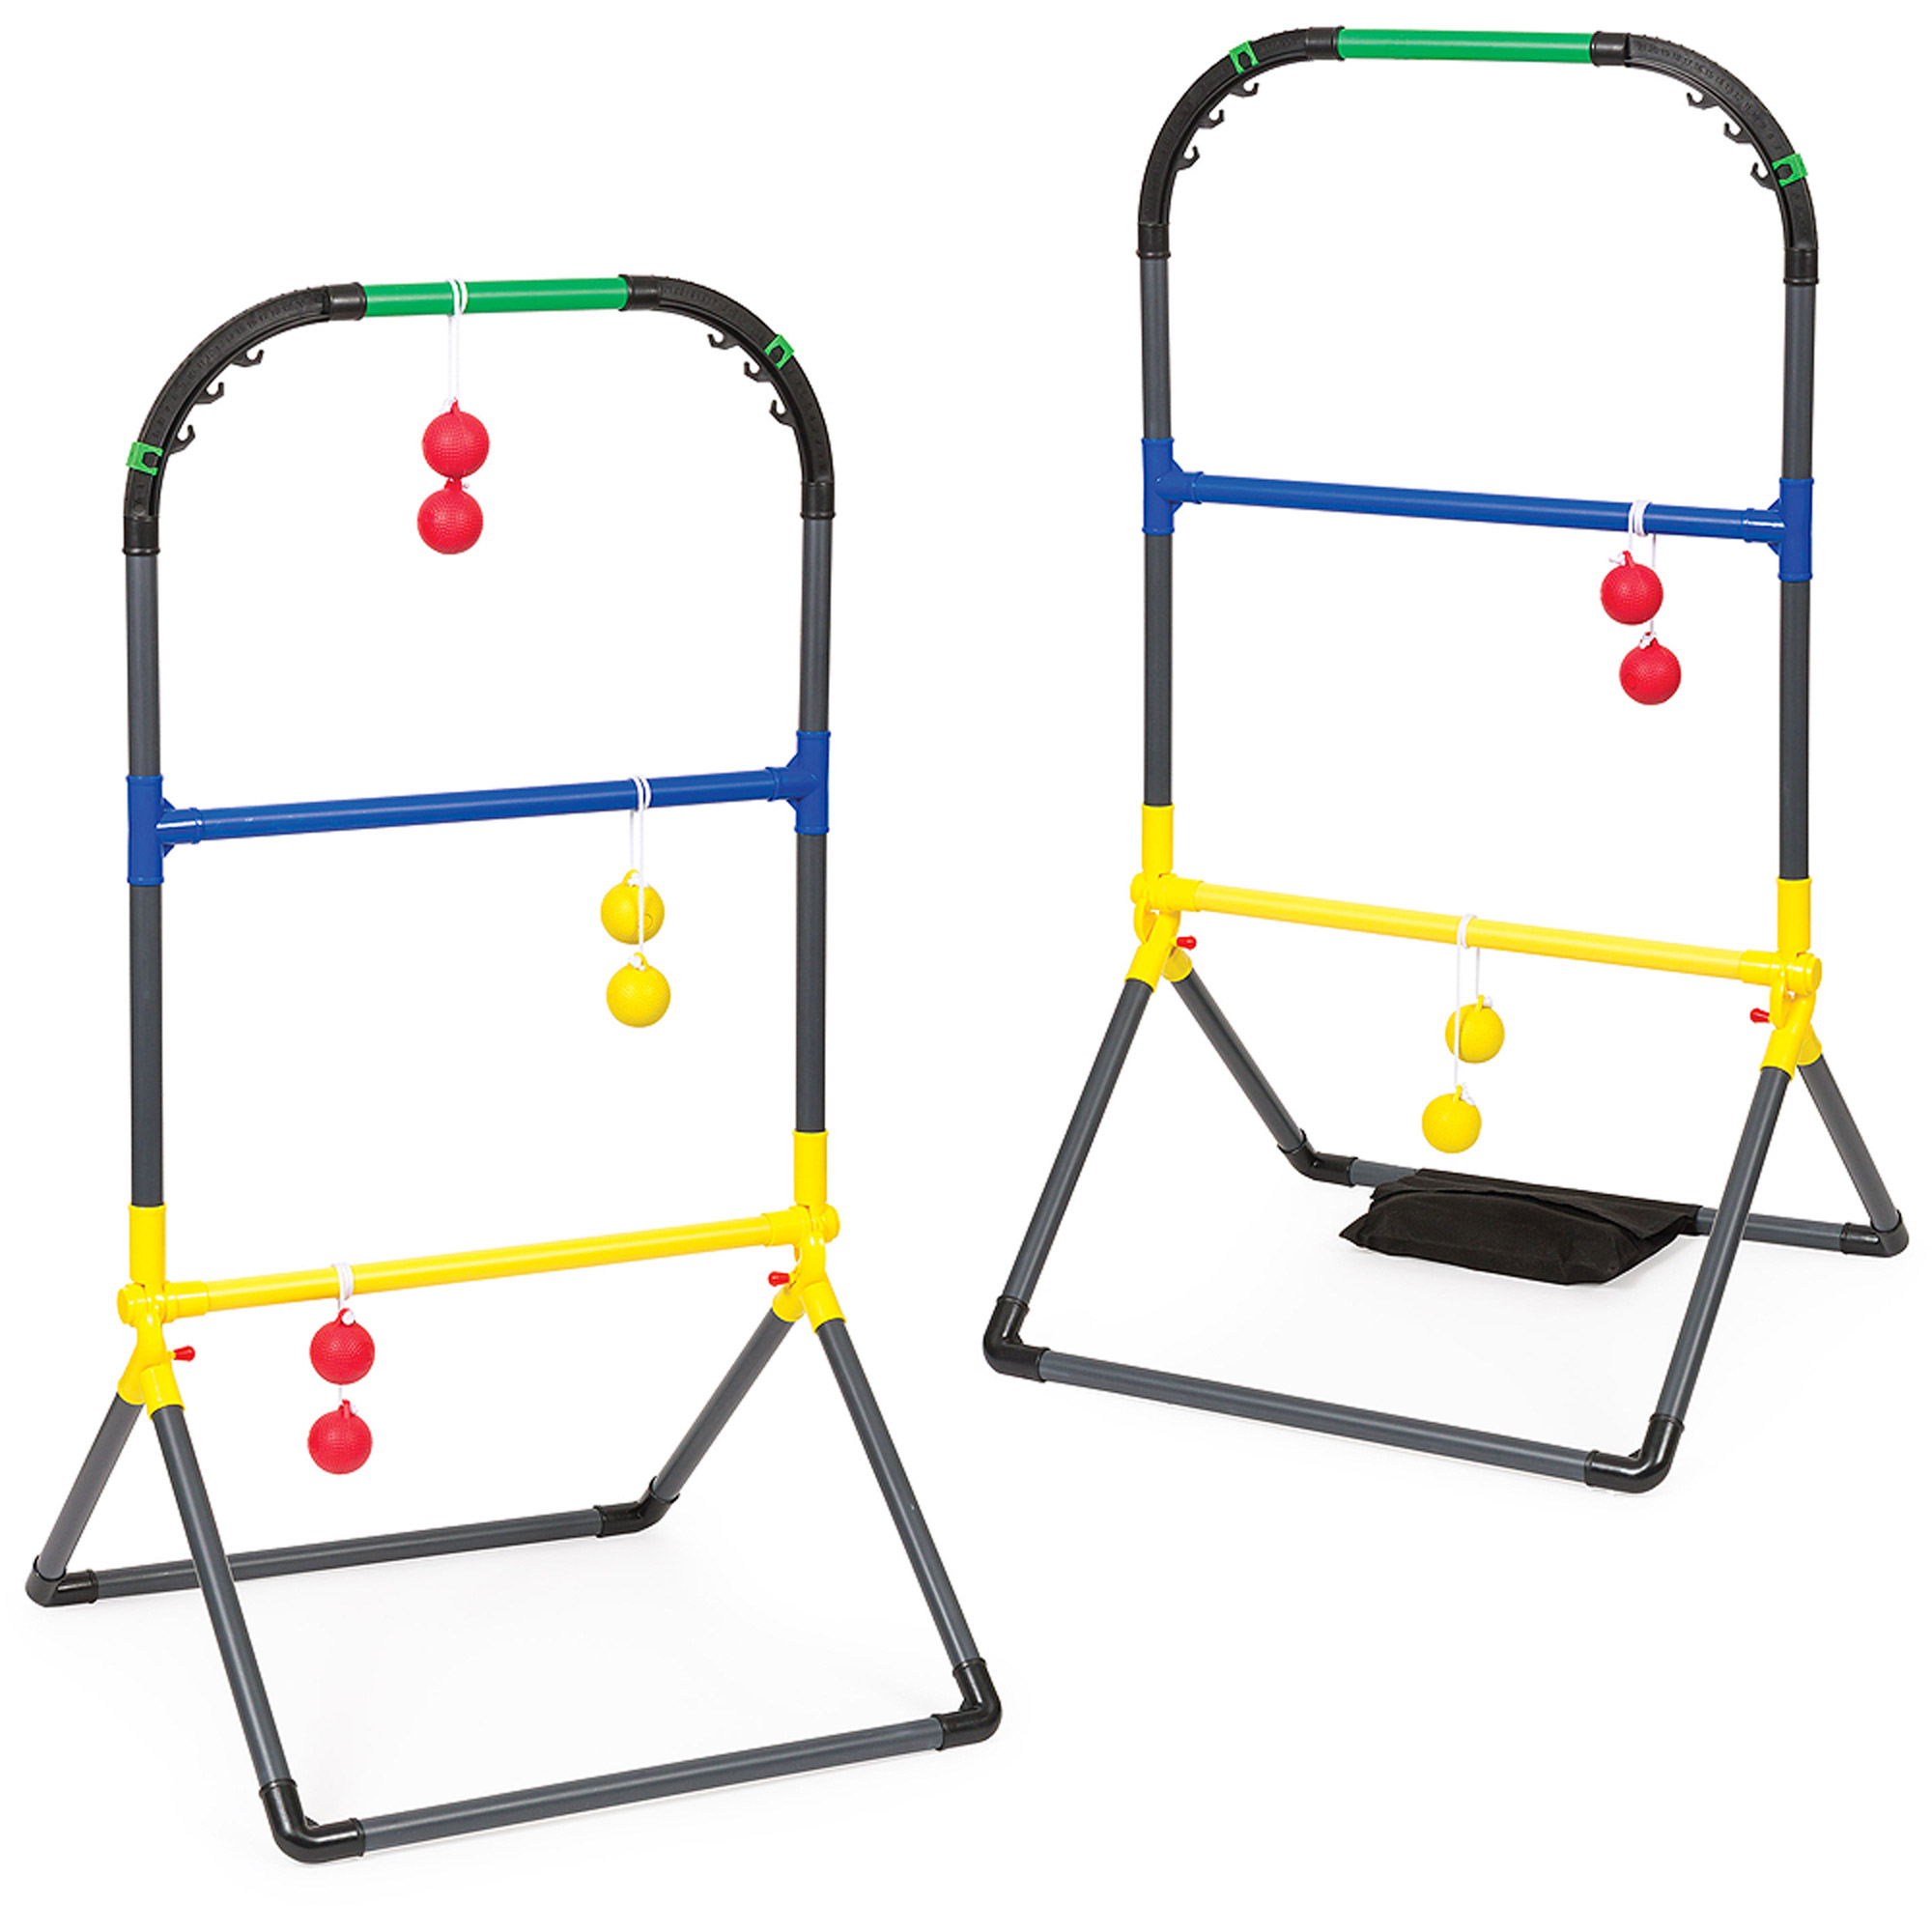 Image result for ladderball